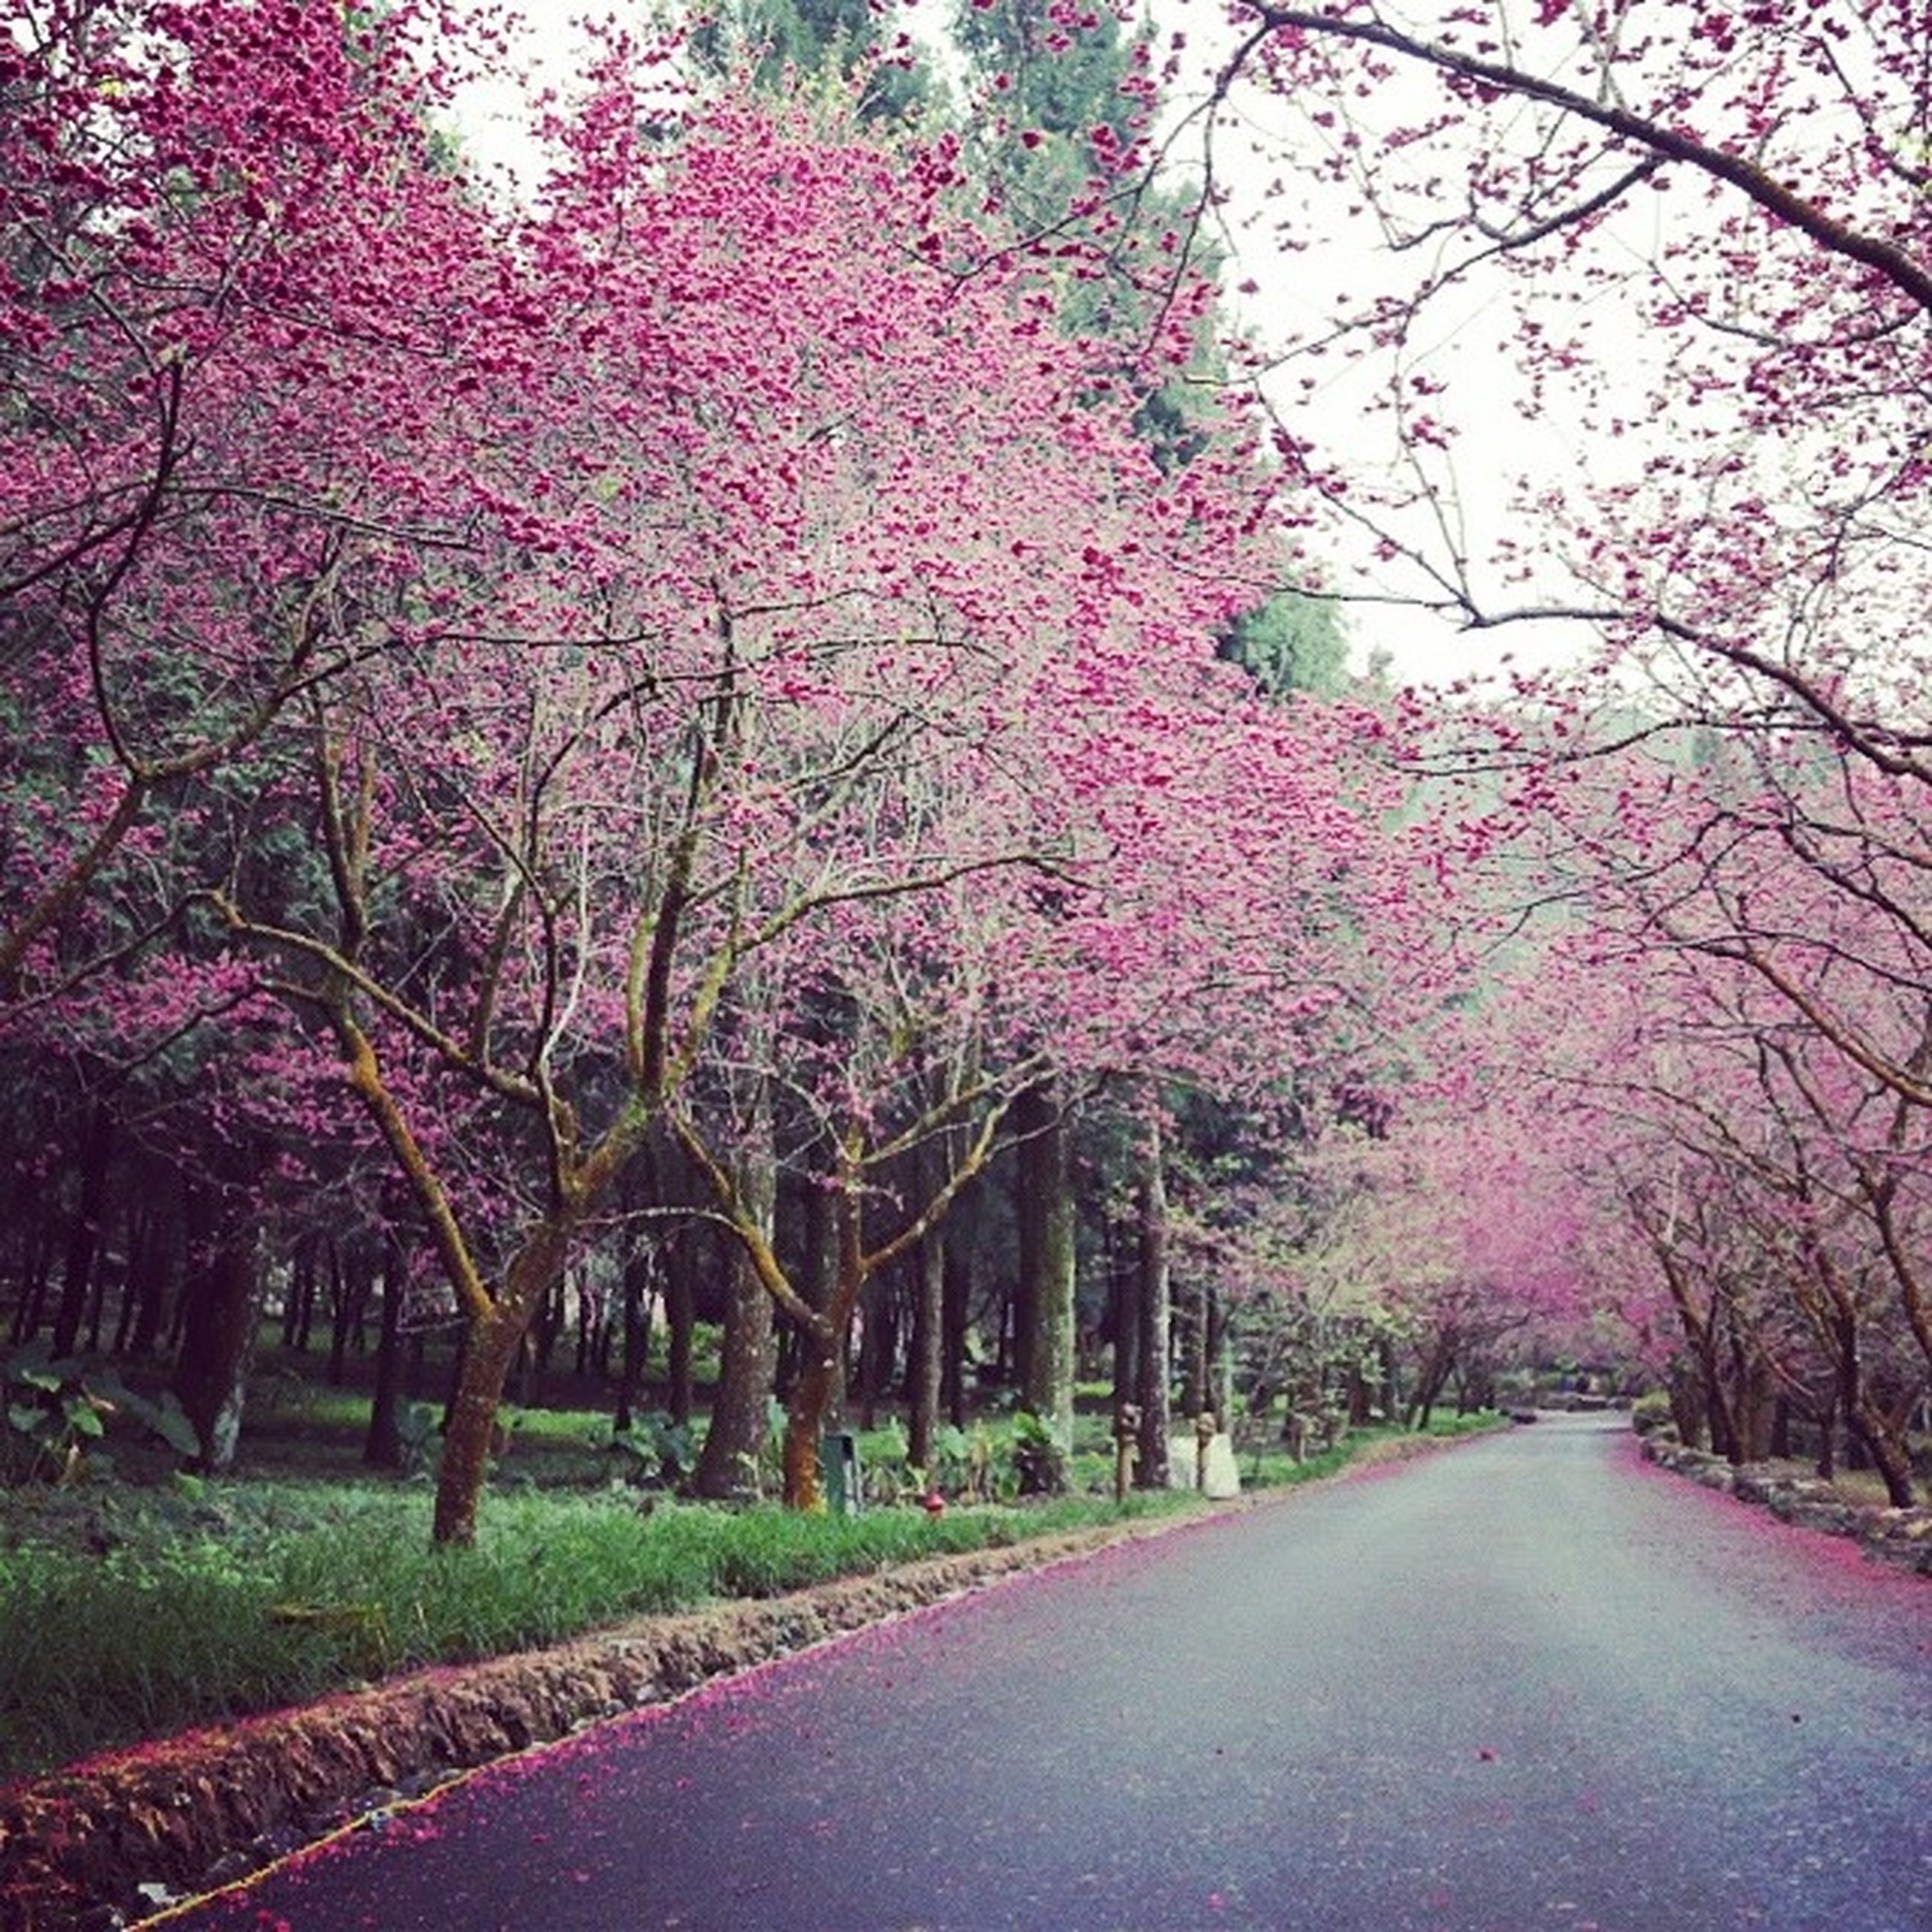 tree, flower, the way forward, growth, beauty in nature, branch, nature, pink color, park - man made space, tranquility, tranquil scene, treelined, road, freshness, diminishing perspective, scenics, season, blossom, day, footpath